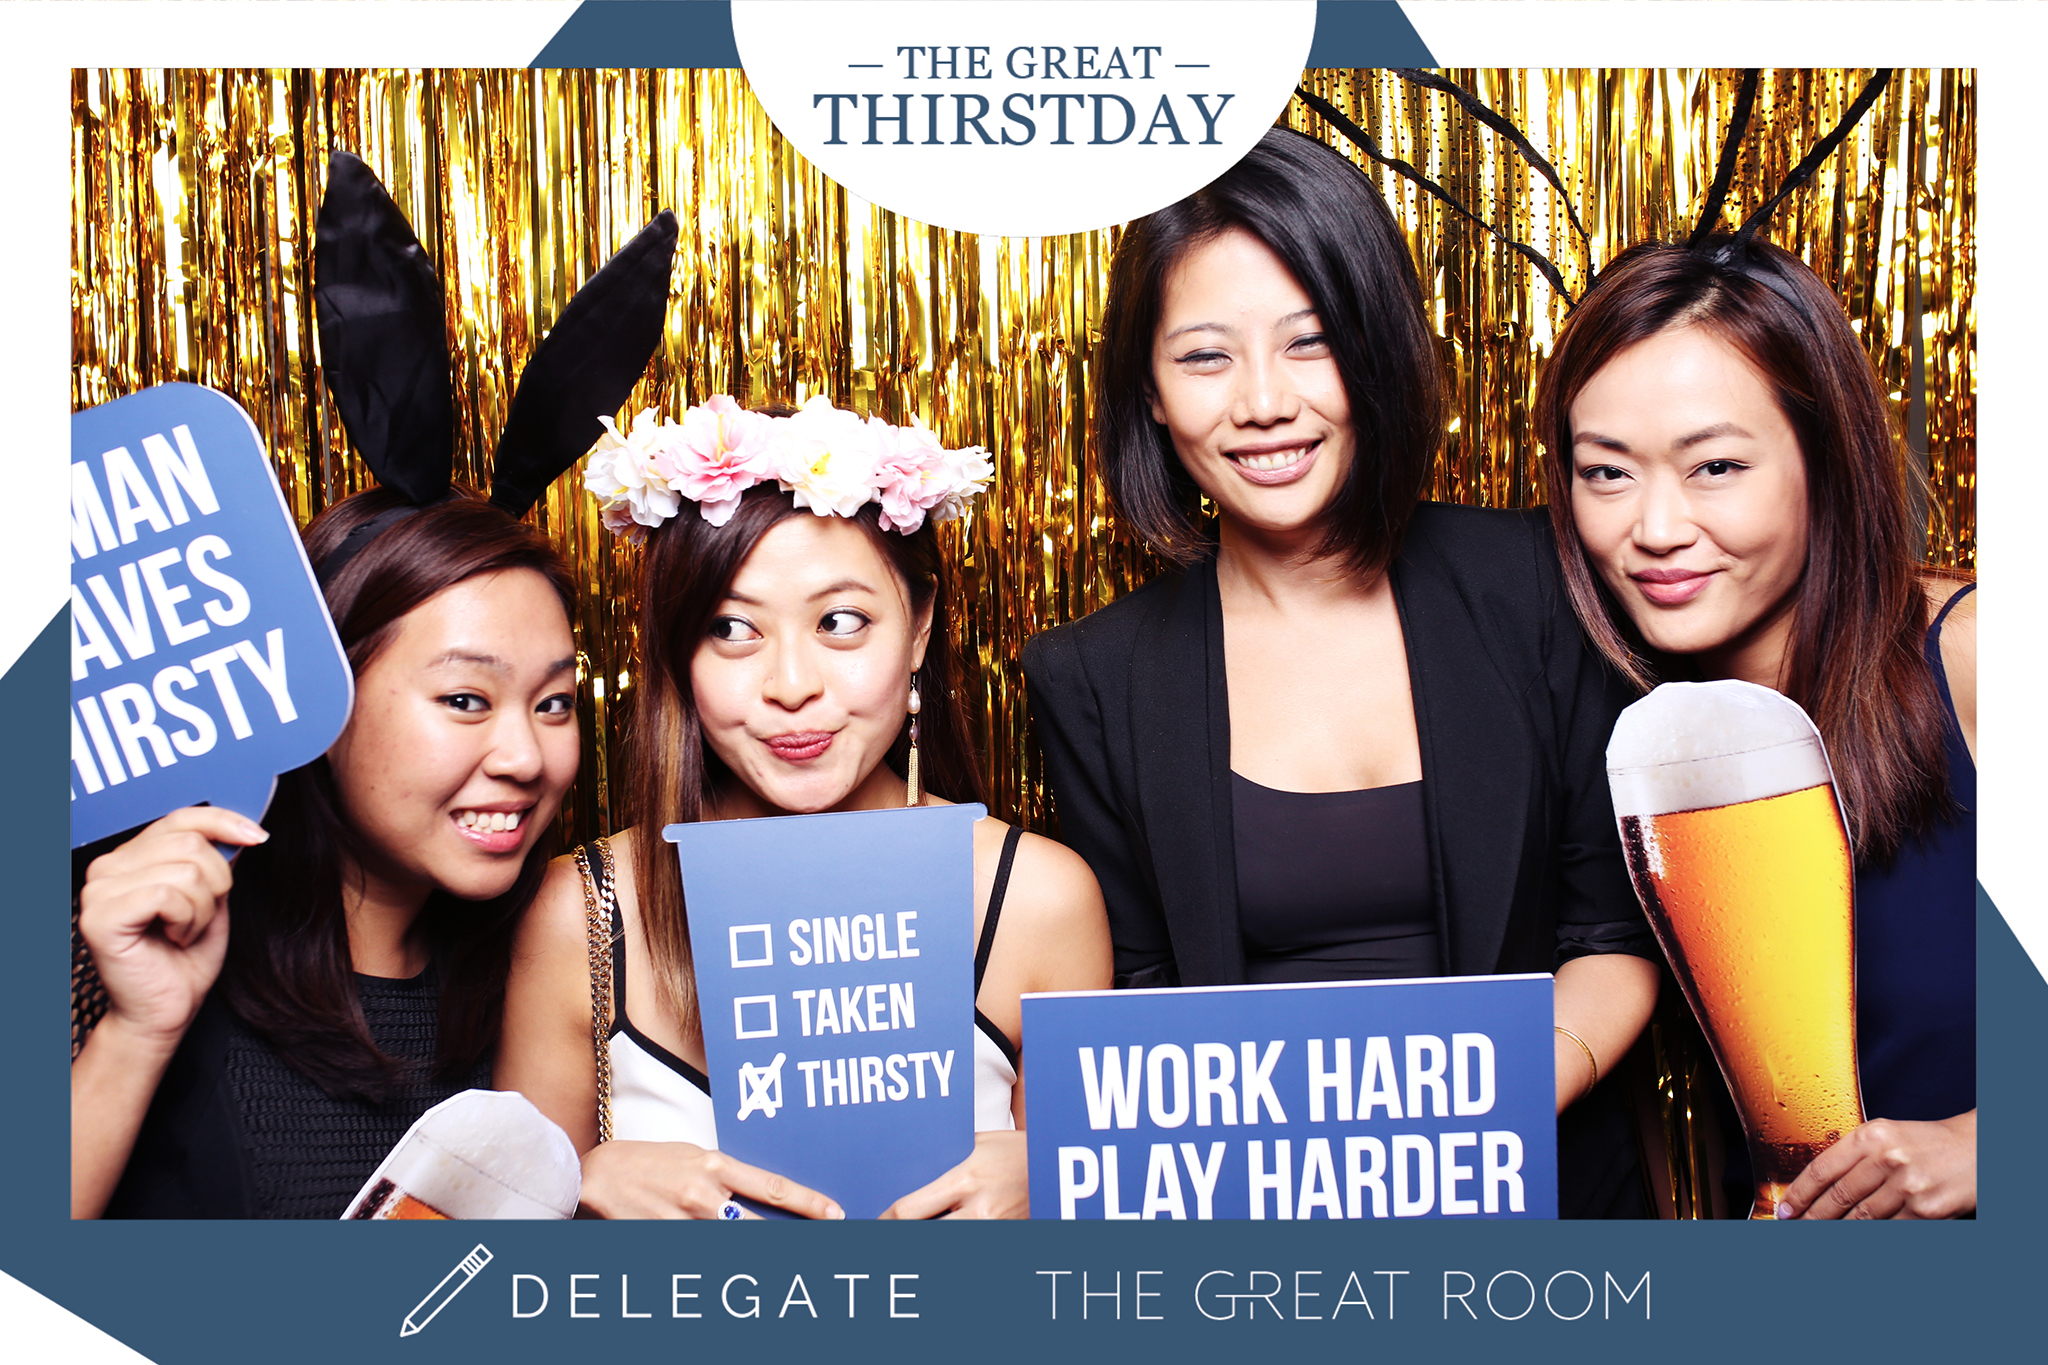 Delegate x The Great Thirstday8